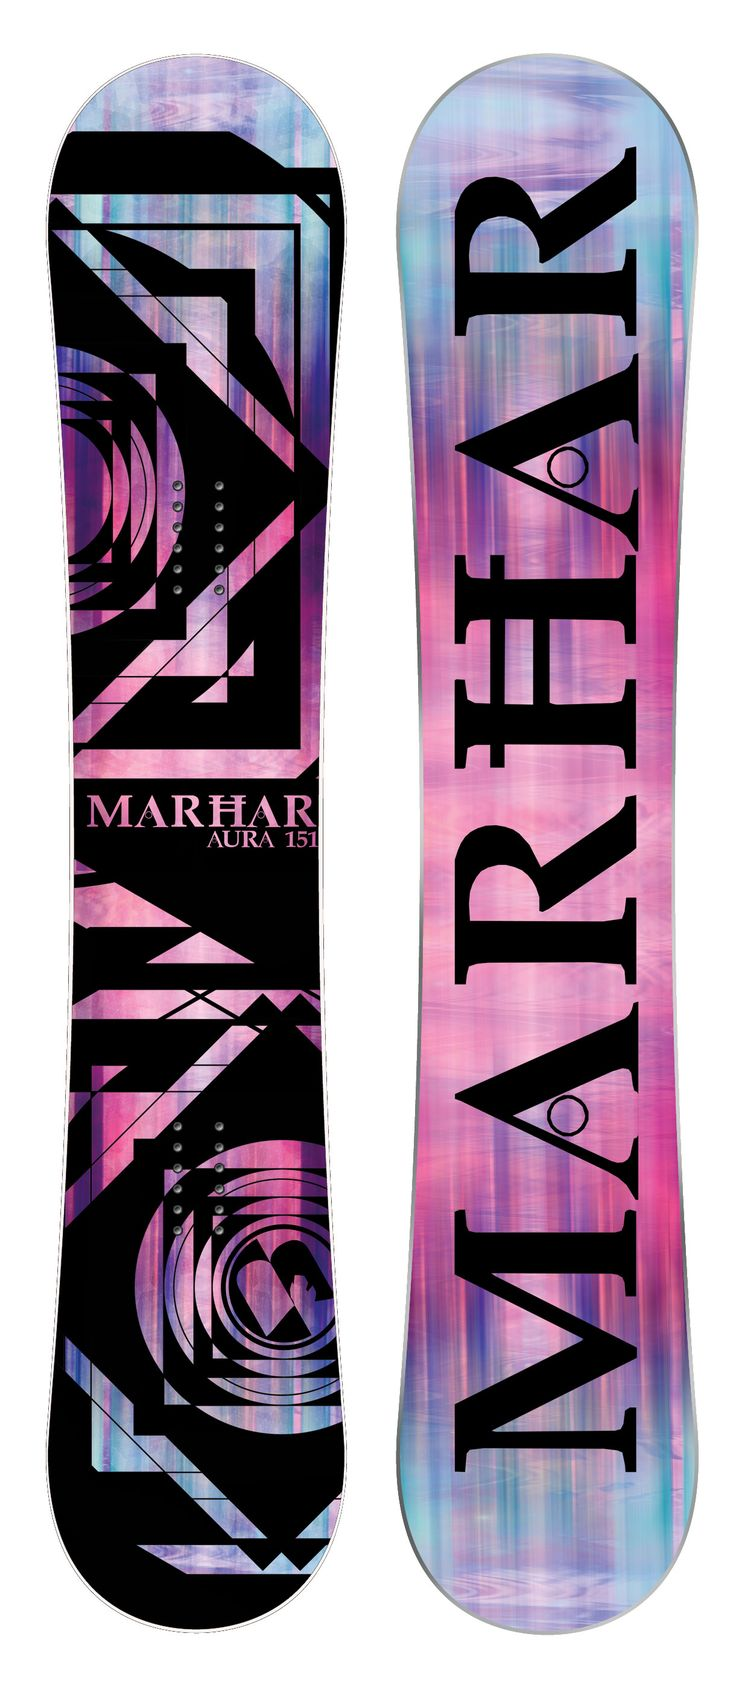 AURA [All Terrain Queen] This Queen of the mountain features our Rocker profile with a flex pattern perfect for a balanced all terrain freestyle deck. The Aura has surfy and smooth edge to edge transitions with serious edge hold from the Attack Arc sidecut. This versatile board does it all from park to powder to groomers. It has power, stability, and pop with the perfect amount of flex for the serious lady rider looking for a one quiver board. #snowboard #snowboarding #snow #ride #womens…